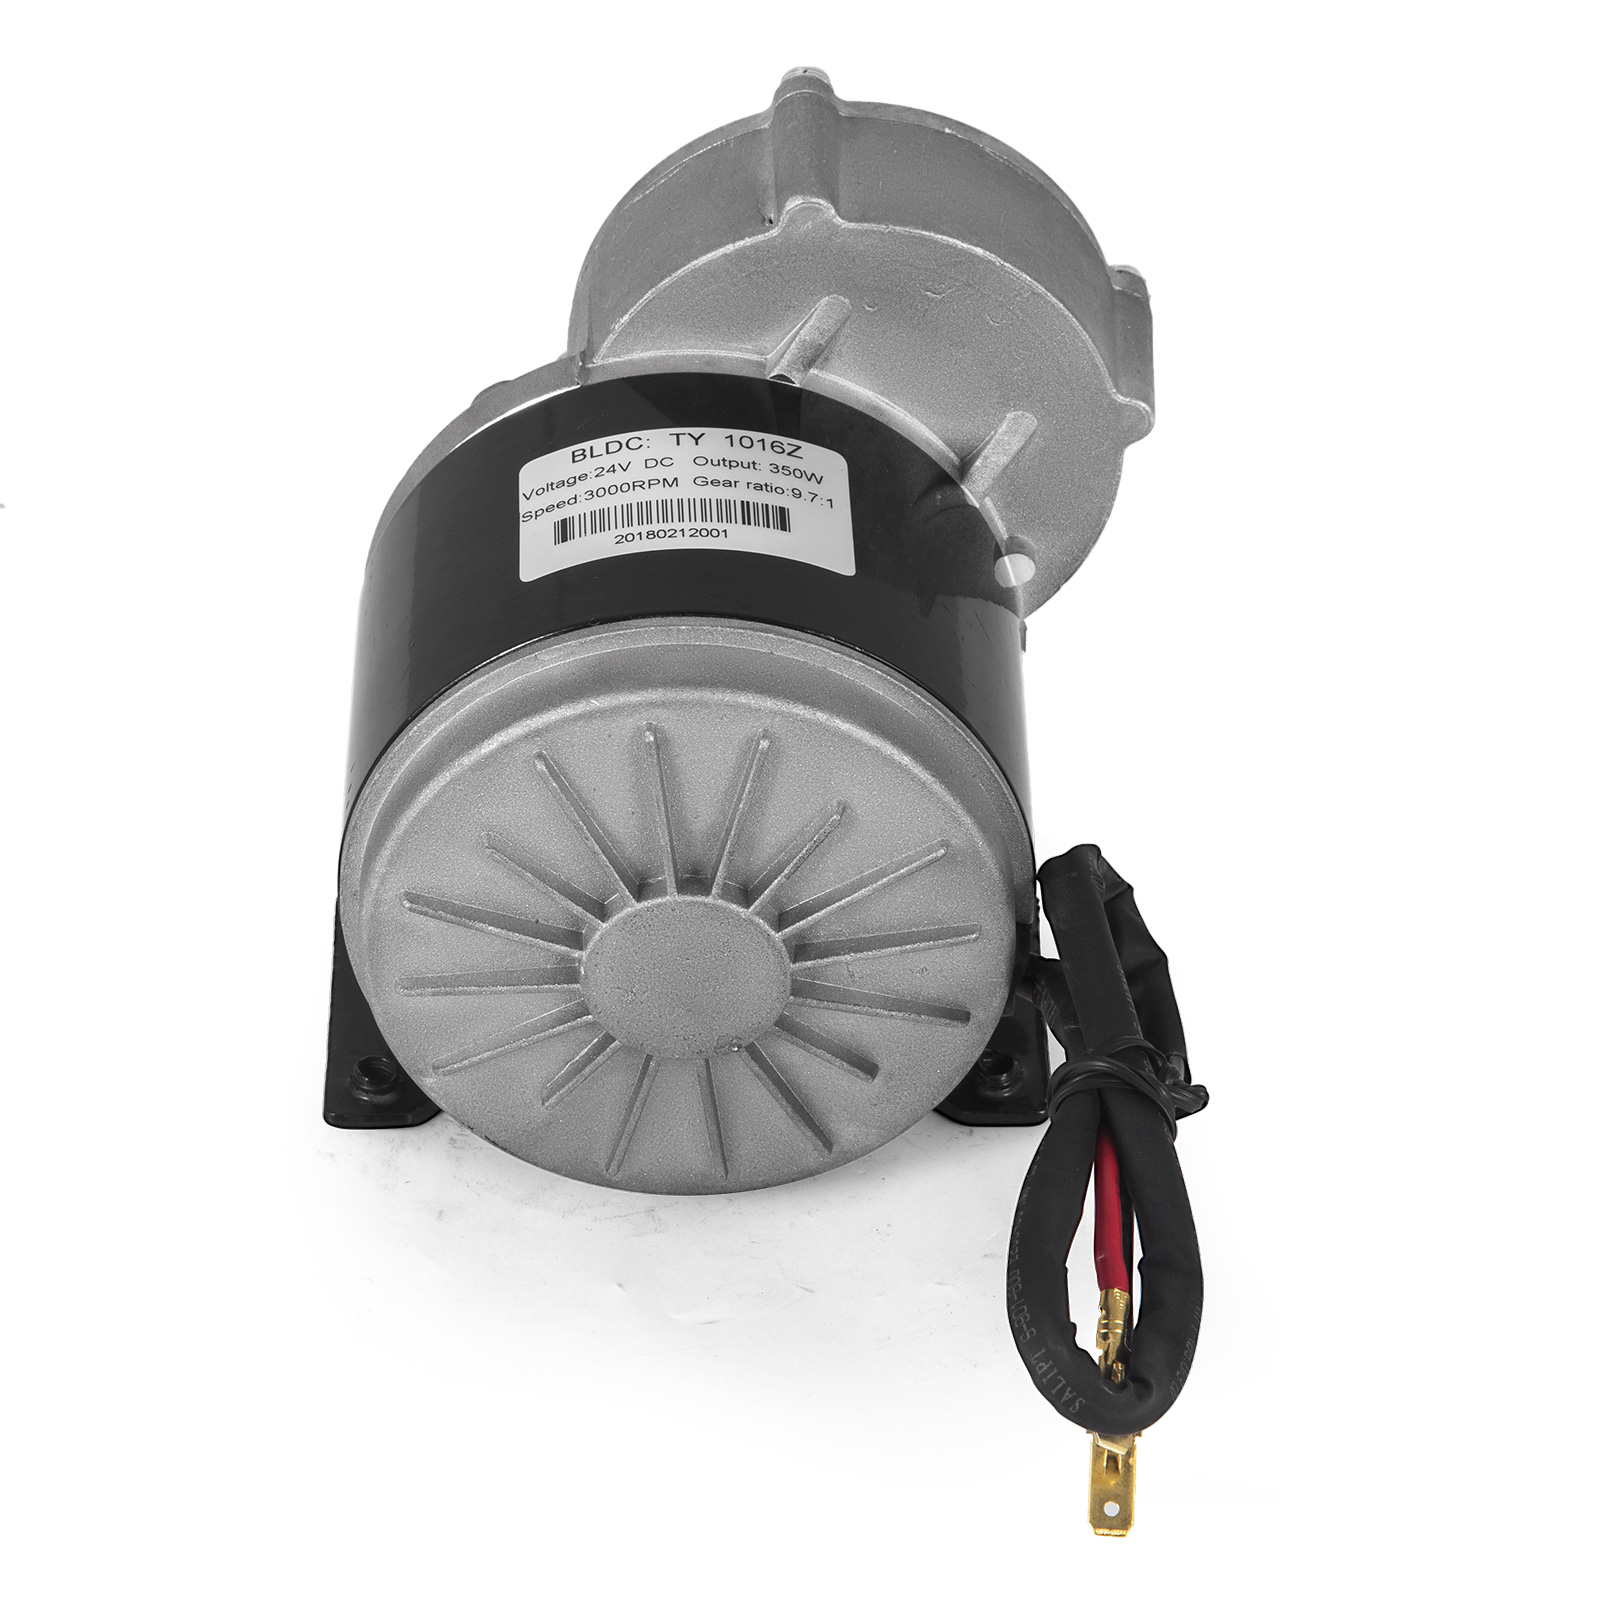 Scooters 350W DC Electric Motor 24V 3000RPM Gear ratio 9 7:1